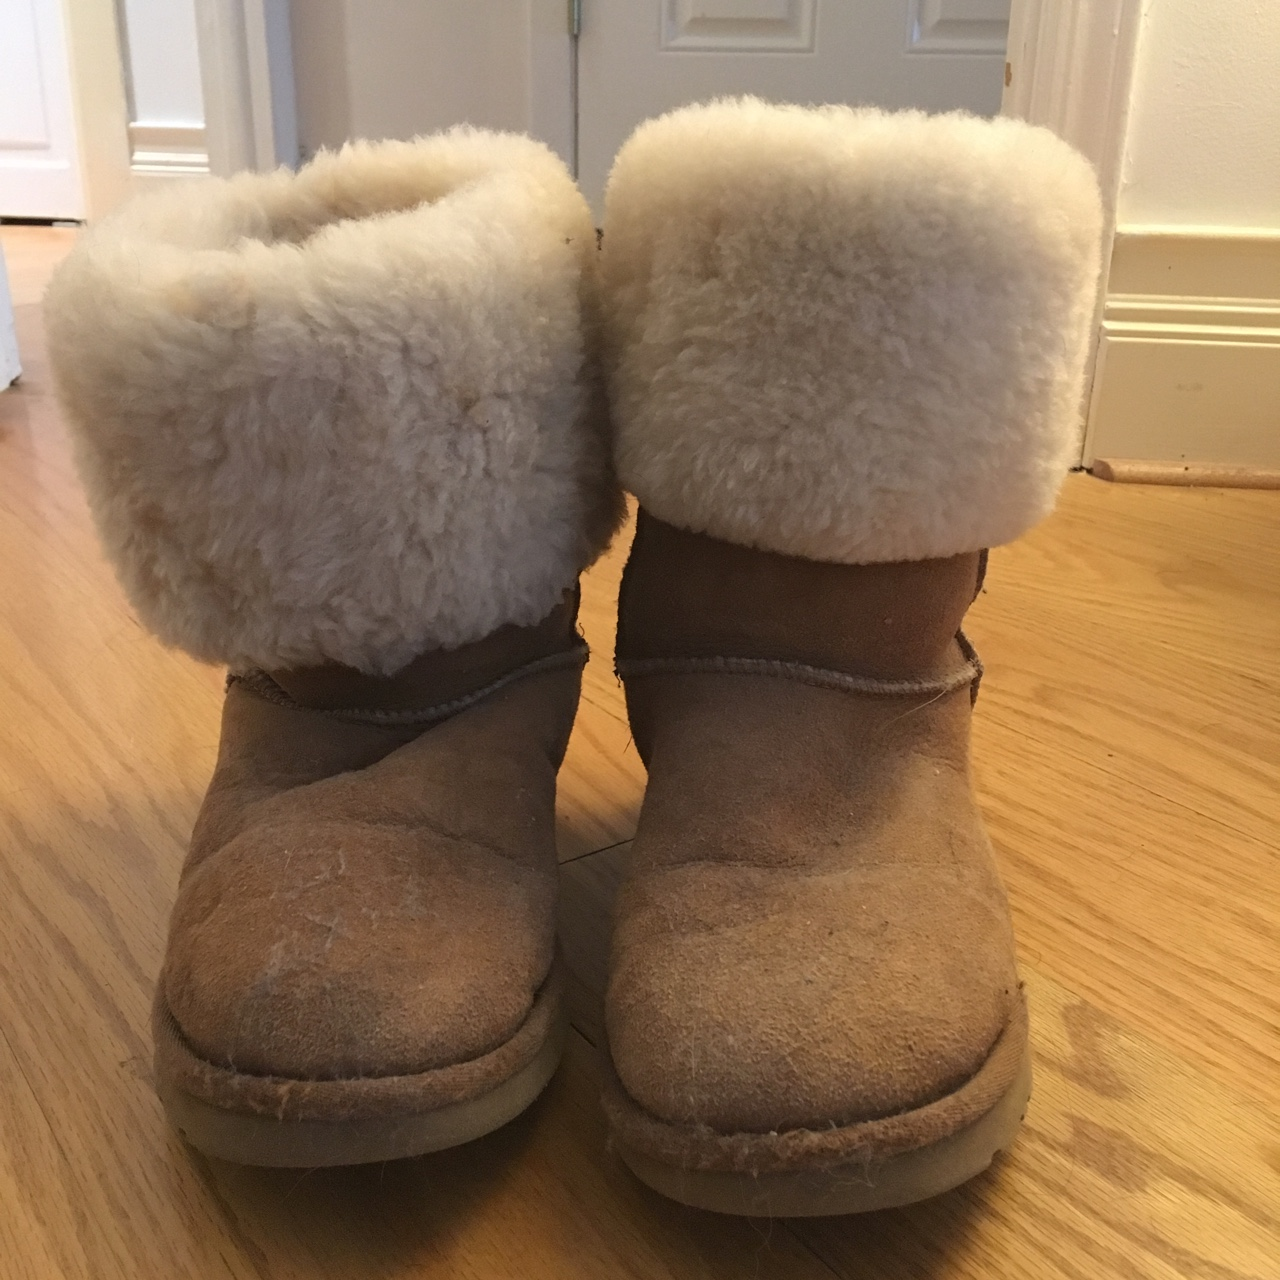 Genuine ugg boots for sale! These are